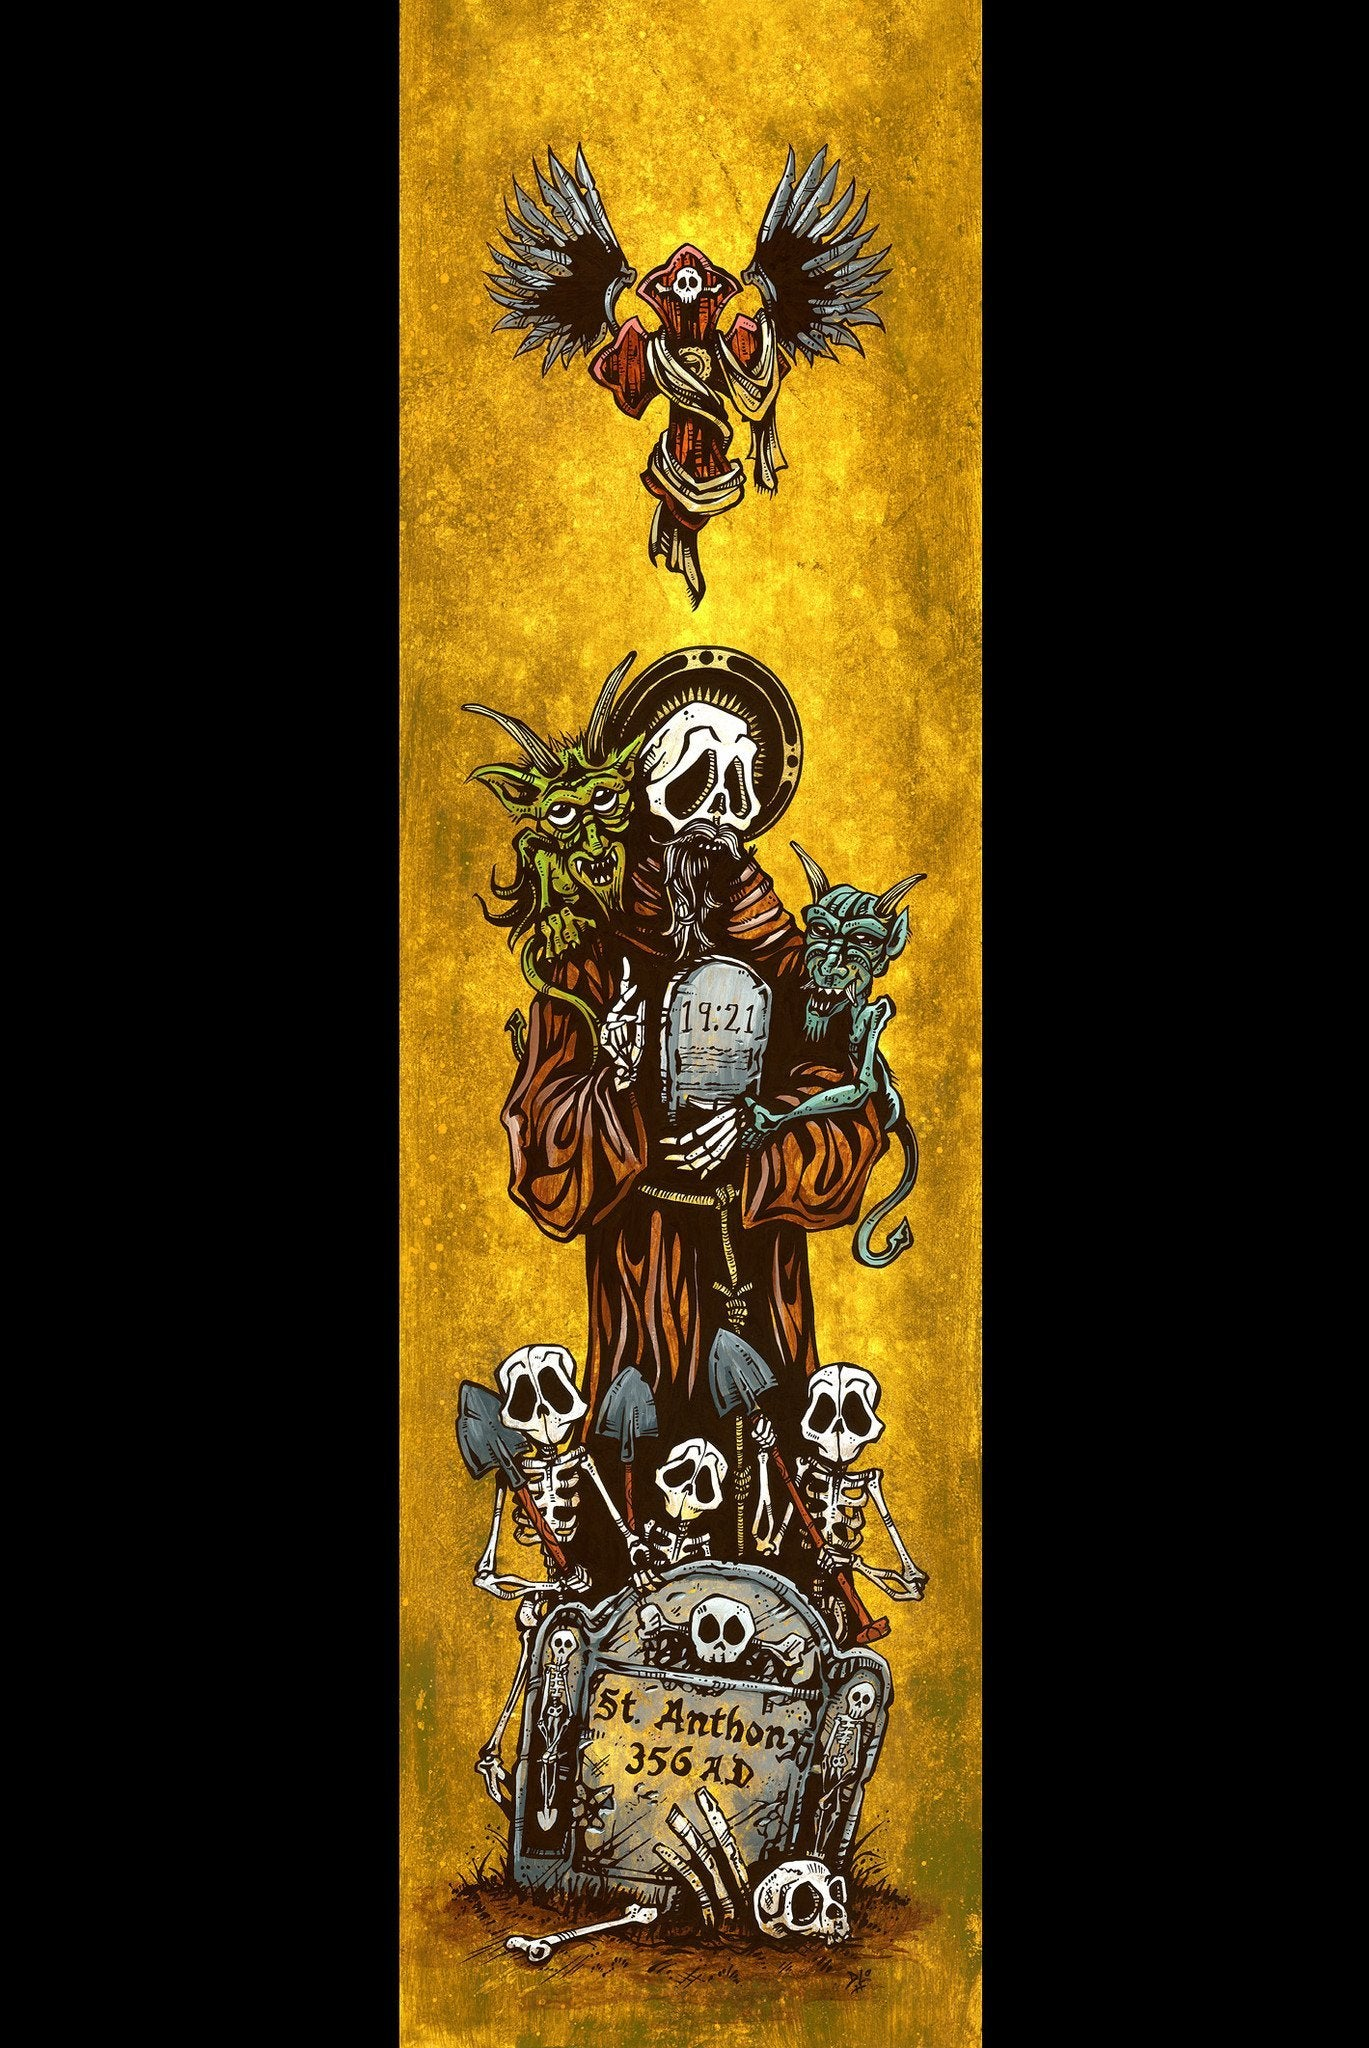 Saint Anthony by Day of the Dead Artist David Lozeau, Day of the Dead Art, Dia de los Muertos Art, Dia de los Muertos Artist